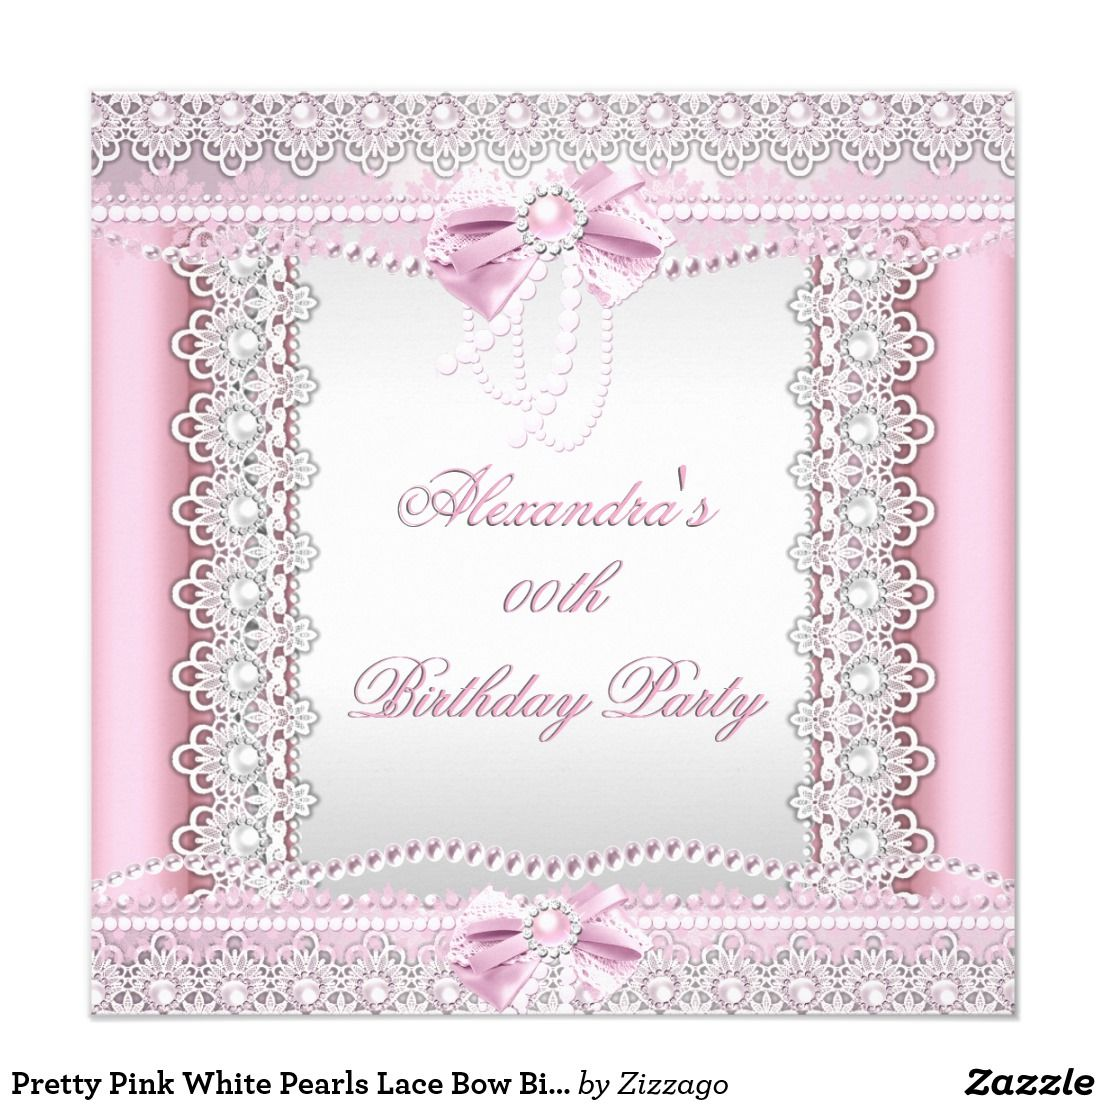 Pretty Pink White Pearls Lace Bow Birthday Party Card Pretty